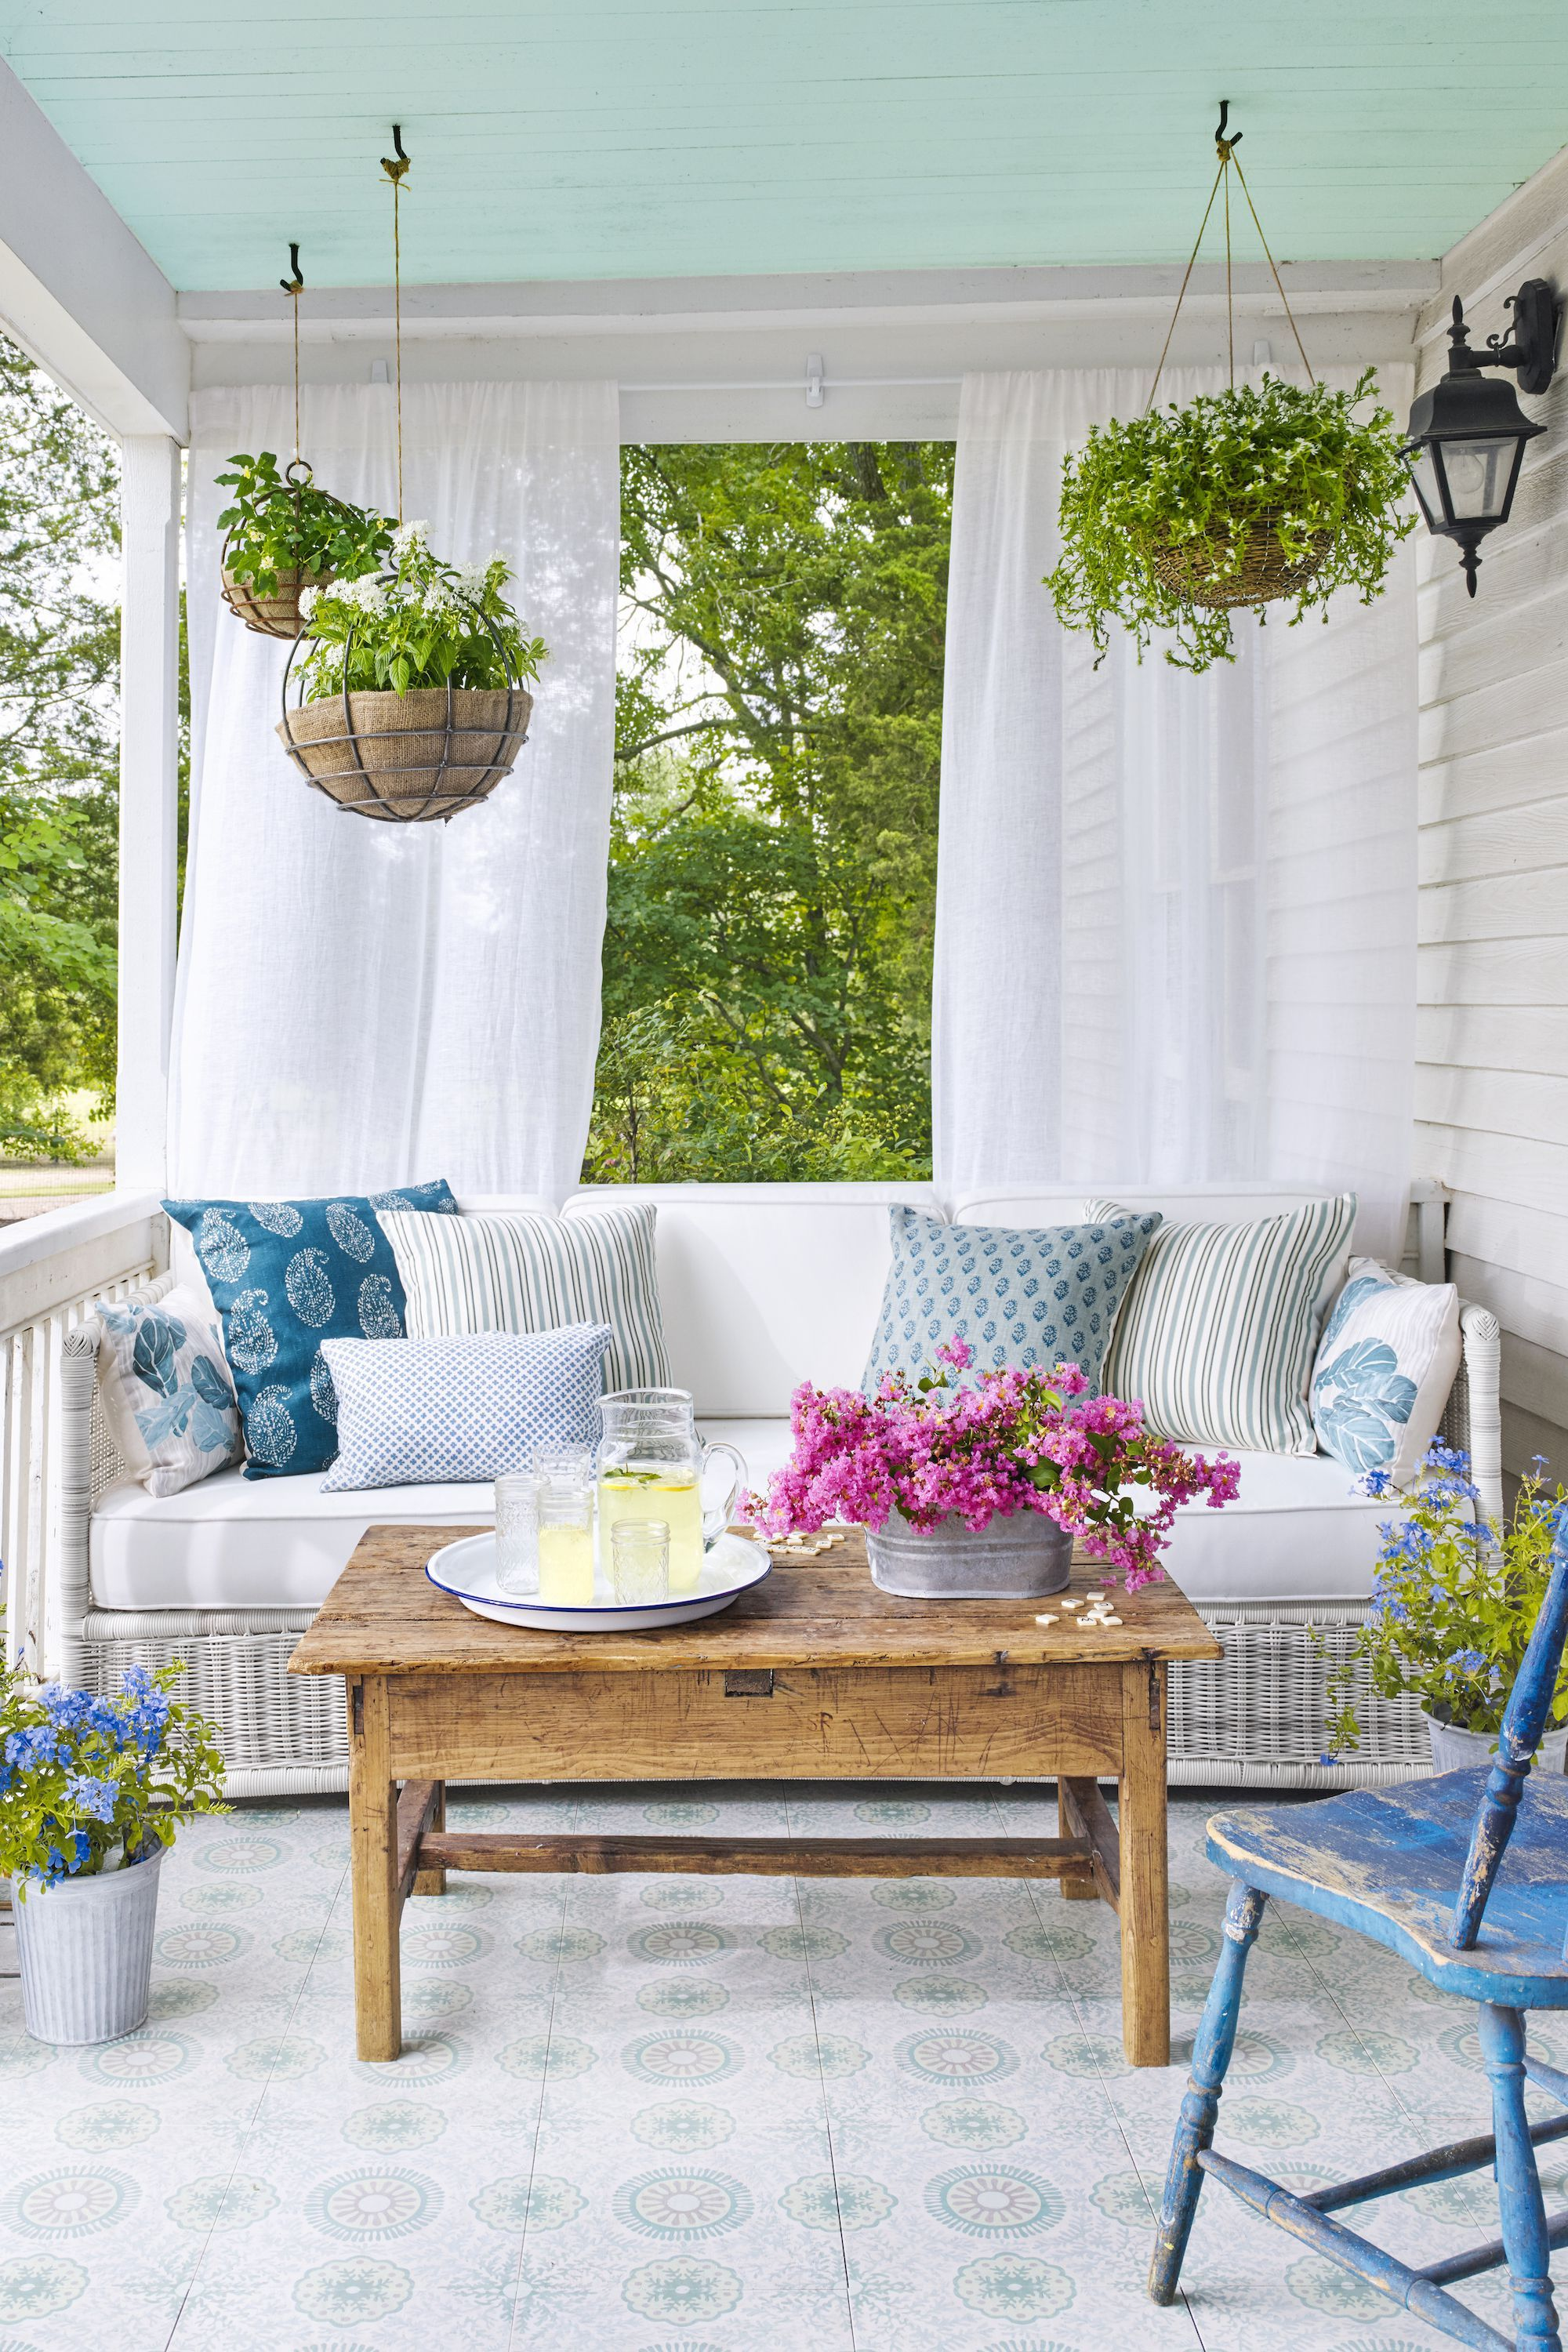 18 Front Porch Ideas - Designs and Decorating Ideas for Your ...